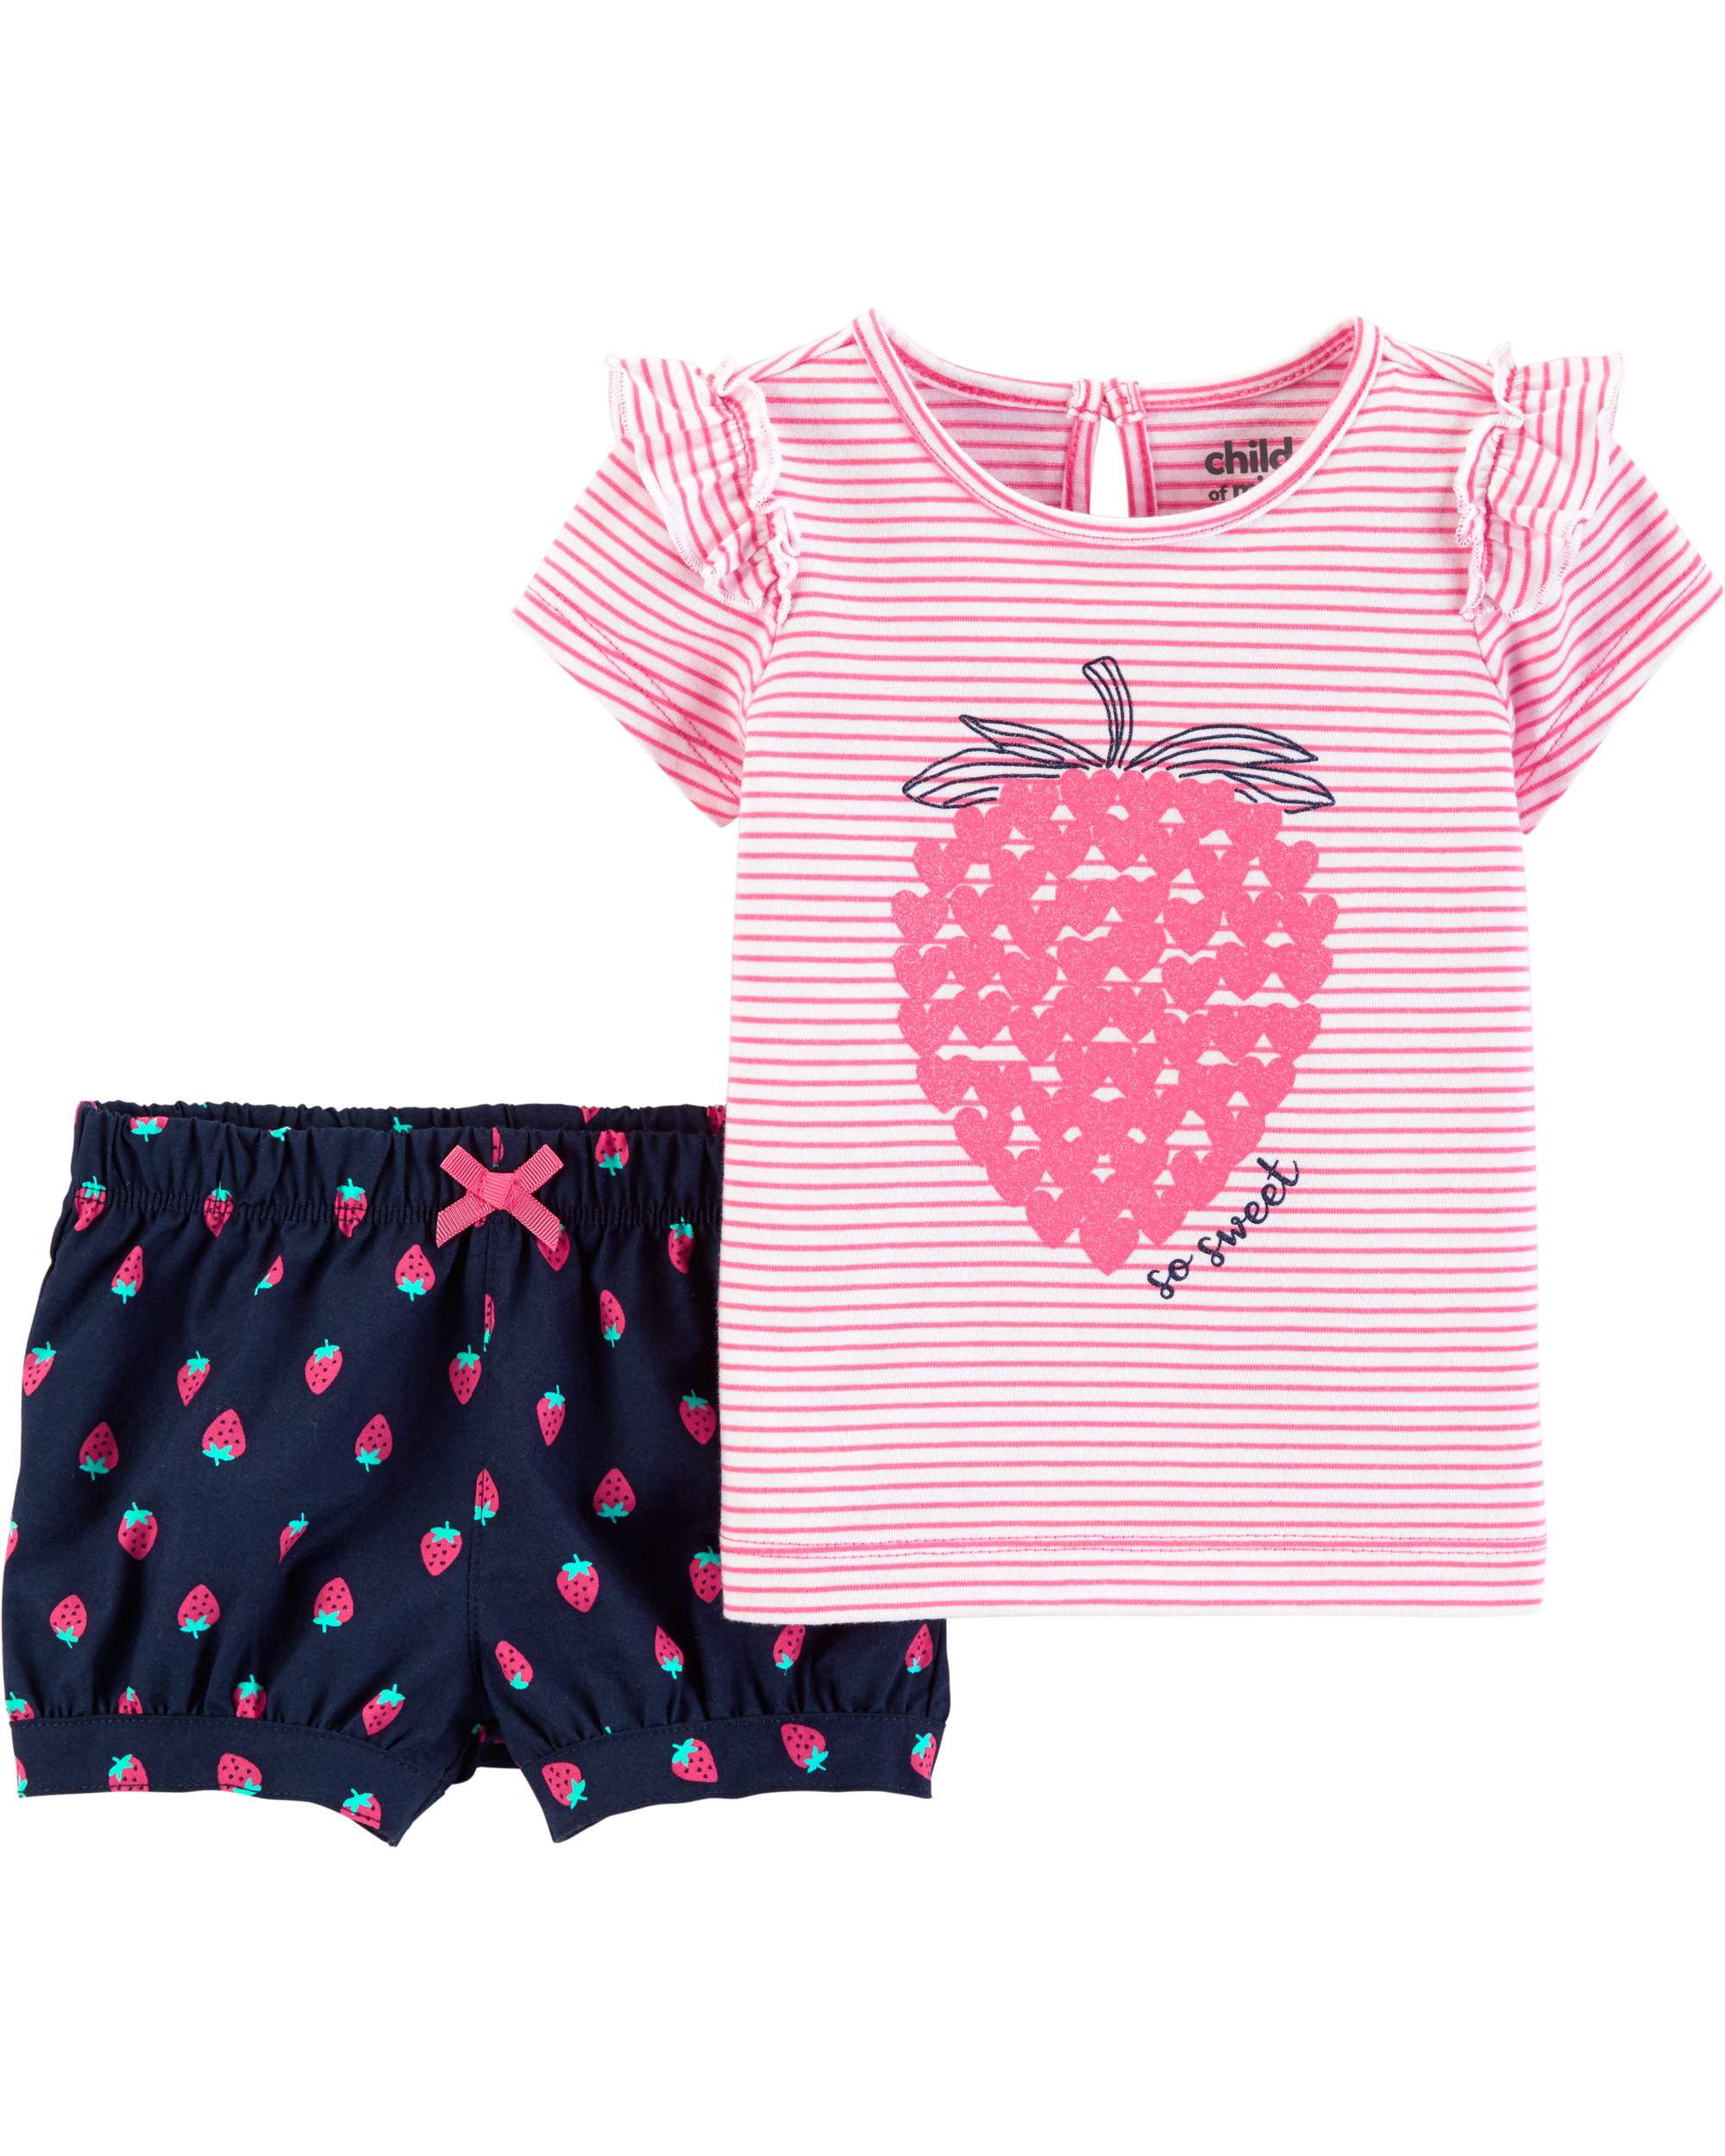 Short Sleeve T-Shirt and Shorts Outfit, 2 Piece Set (Baby Girls)